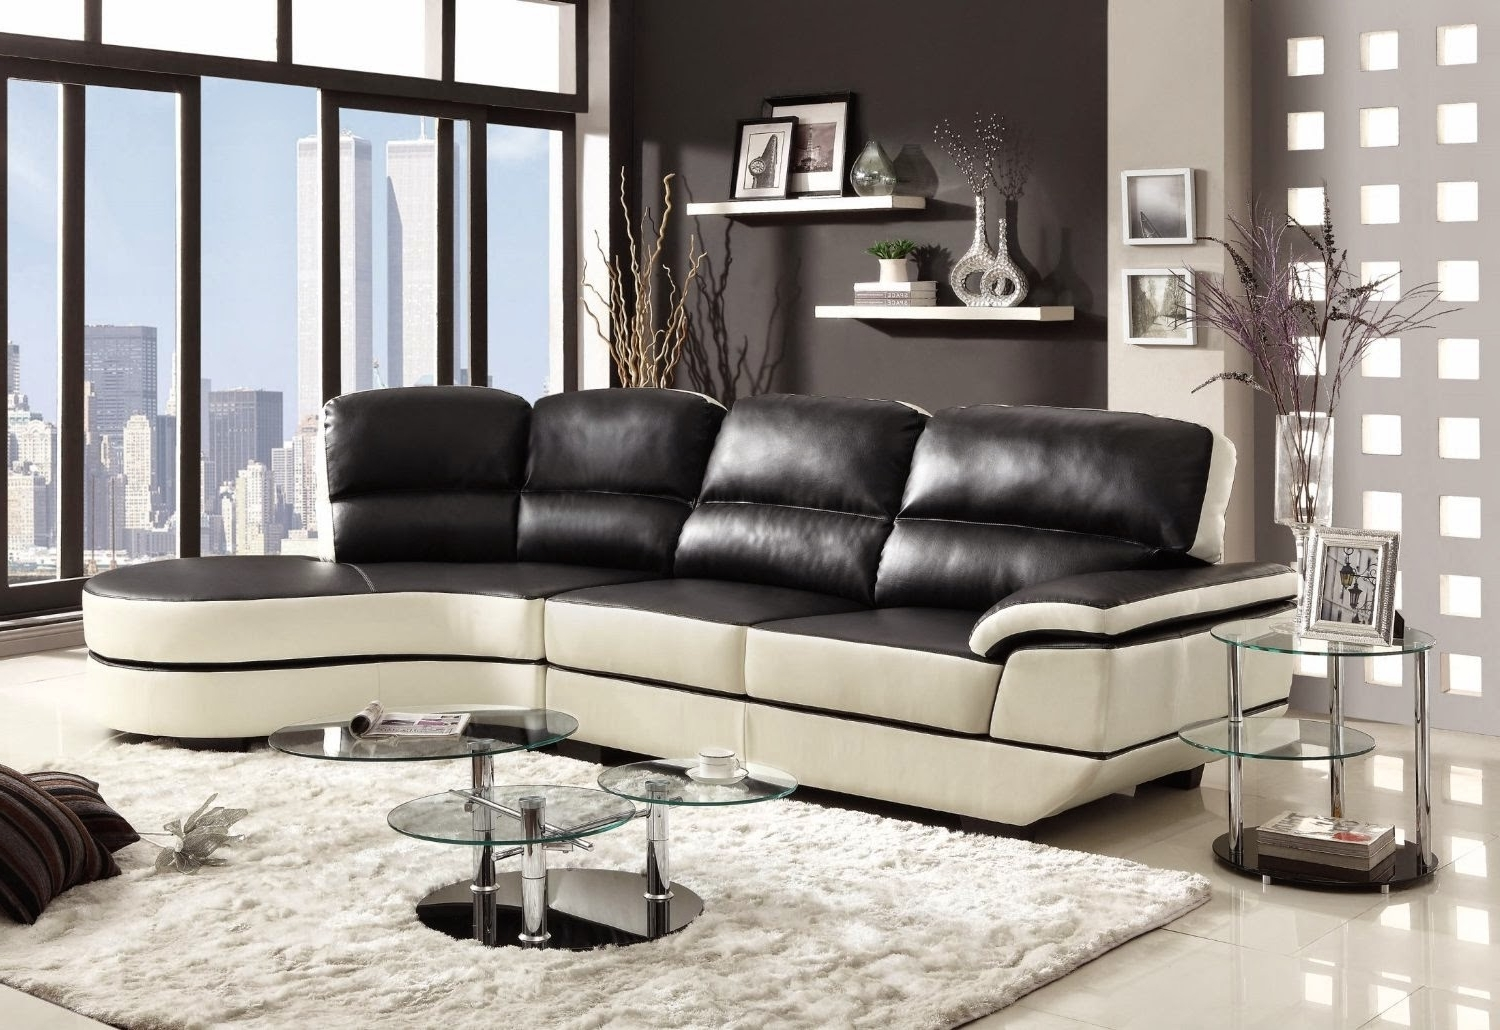 Furniture : Sectional Sofa Eugene Or Sectional Sofa 2 Piece Set Inside Famous Eugene Oregon Sectional Sofas (View 10 of 15)